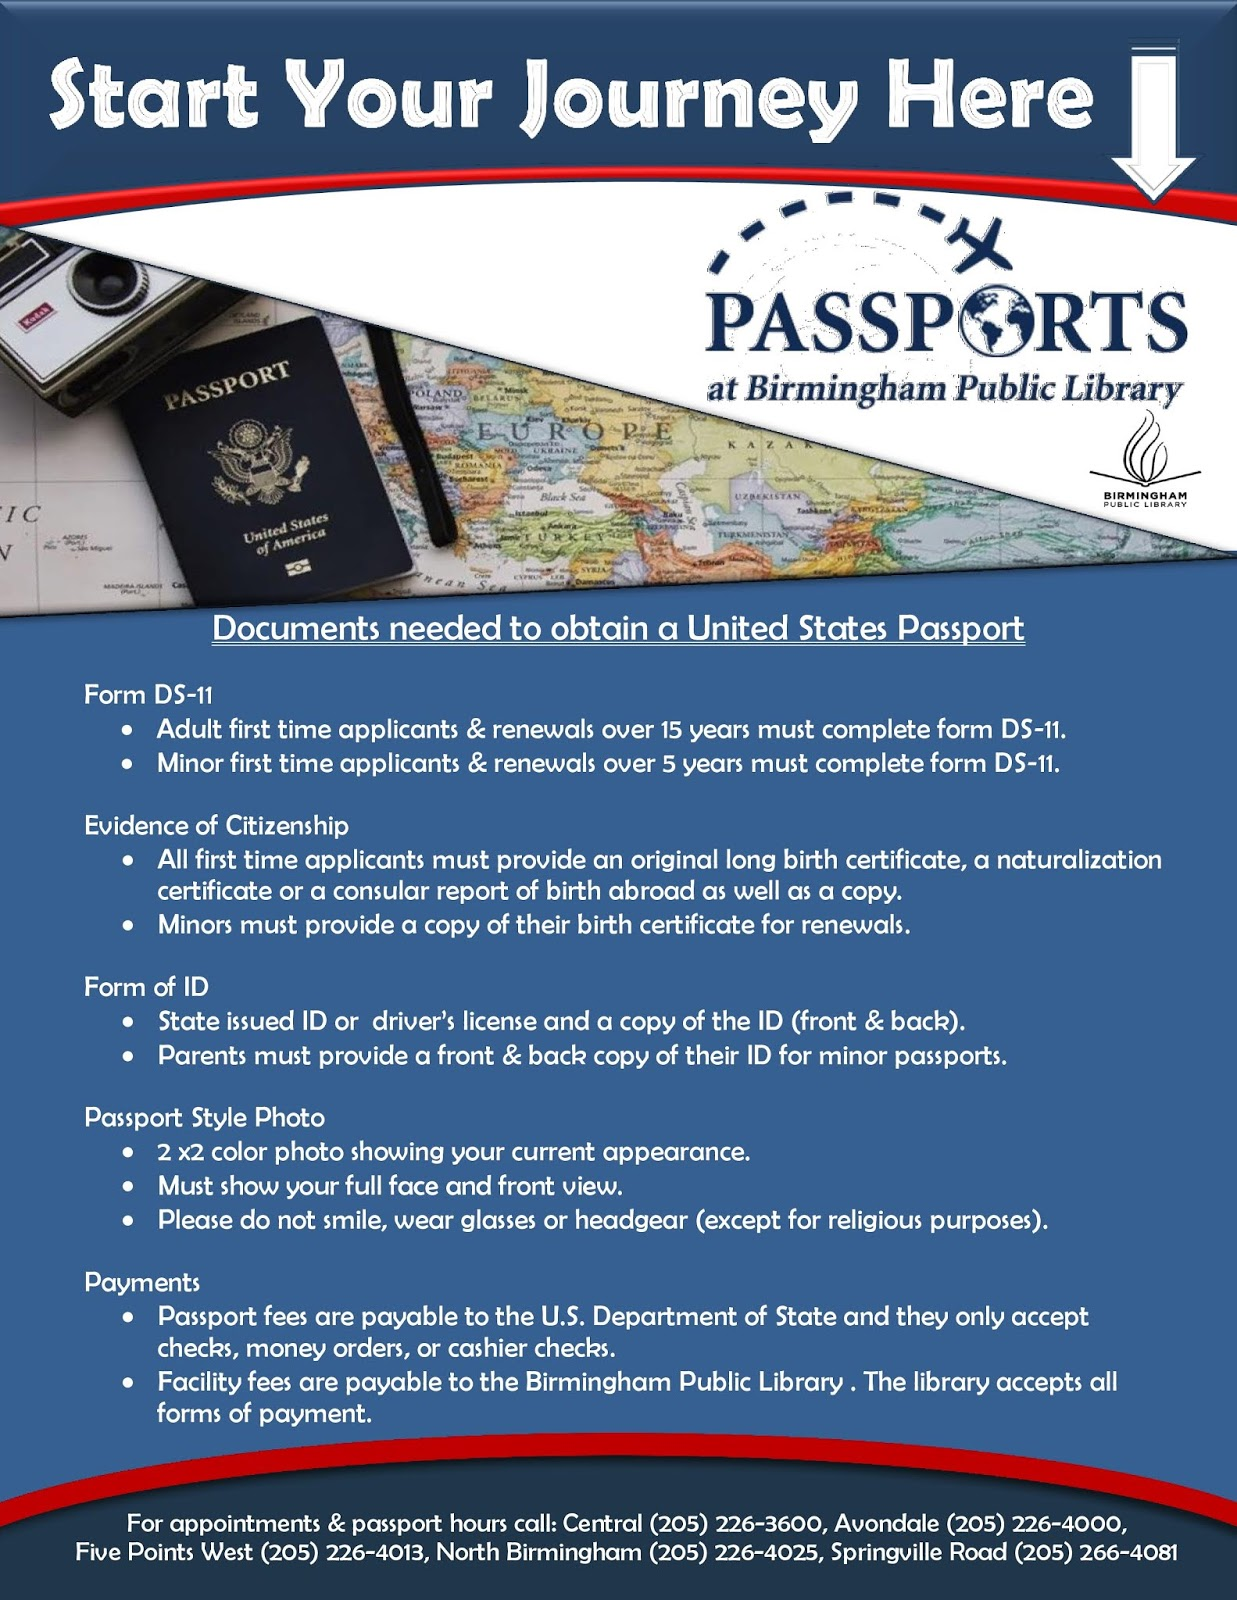 Birmingham Public Library: Traveling Overseas This Fall